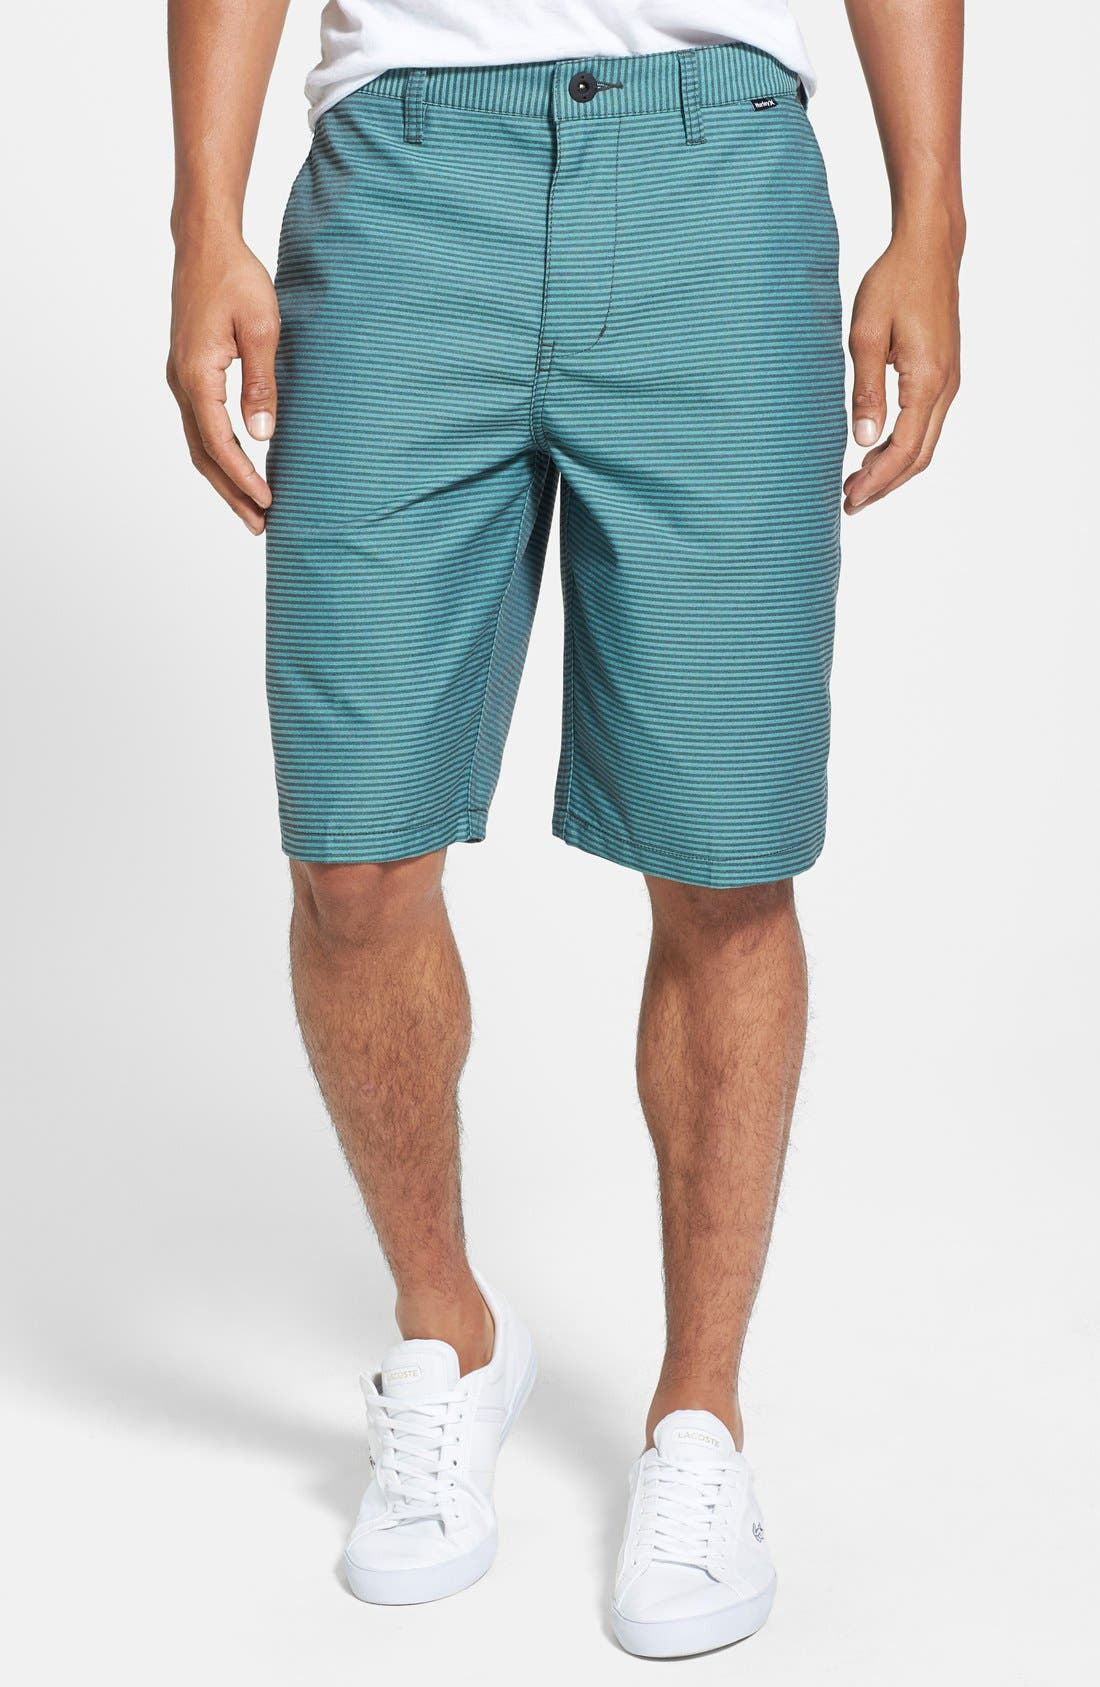 Alternate Image 1 Selected - Hurley 'Hickory' Herringbone Dri-FIT Shorts